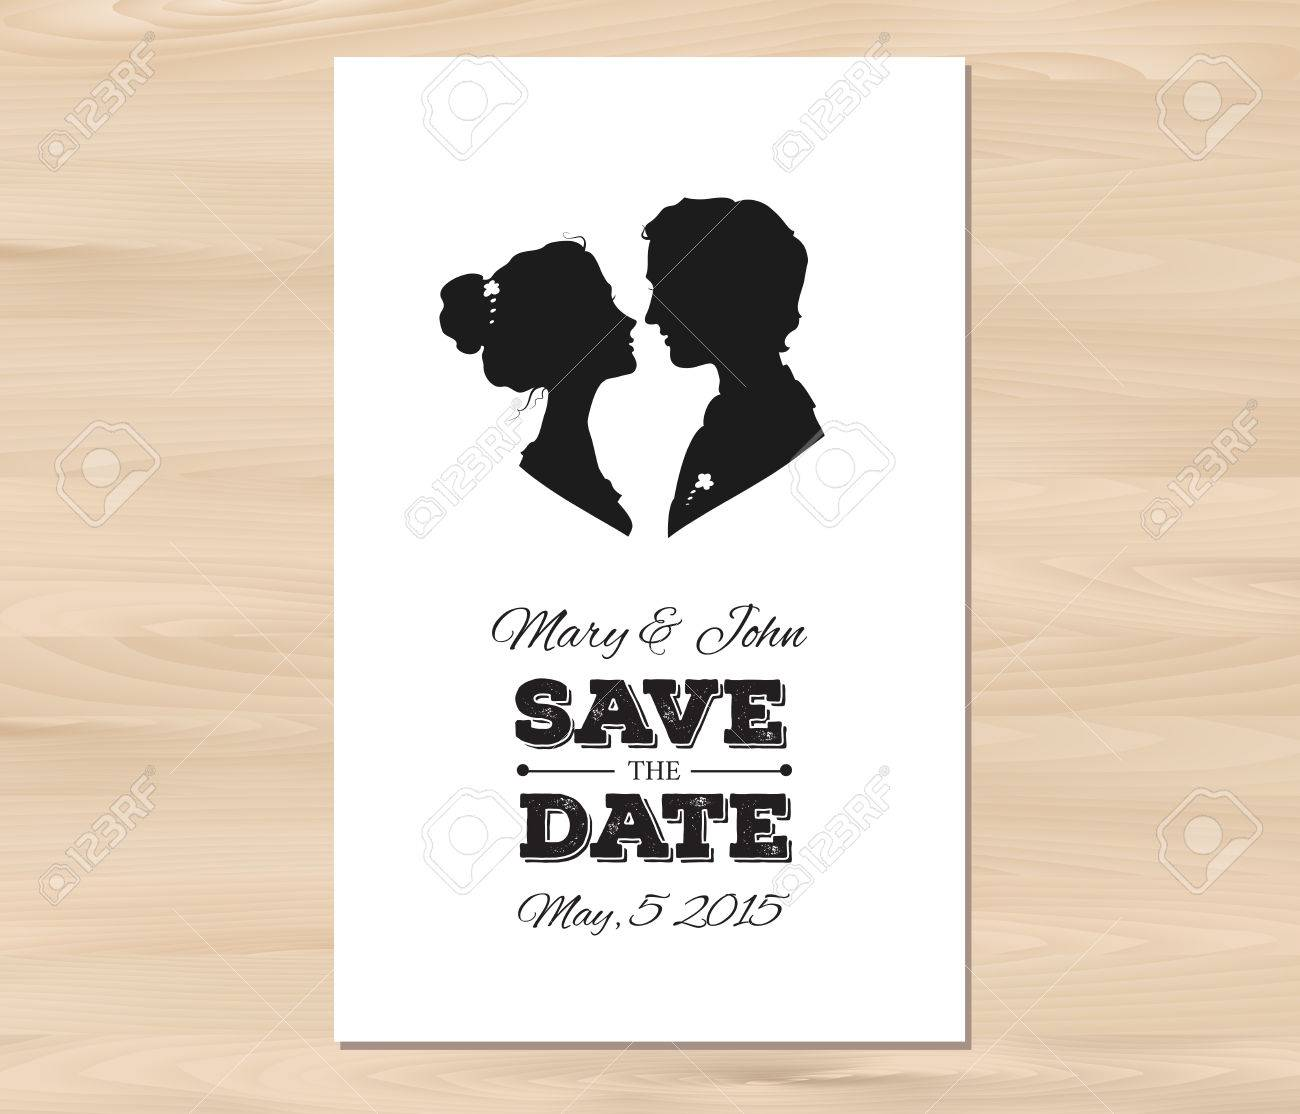 Save The Date Wedding Invitation With Profile Silhouettes Of